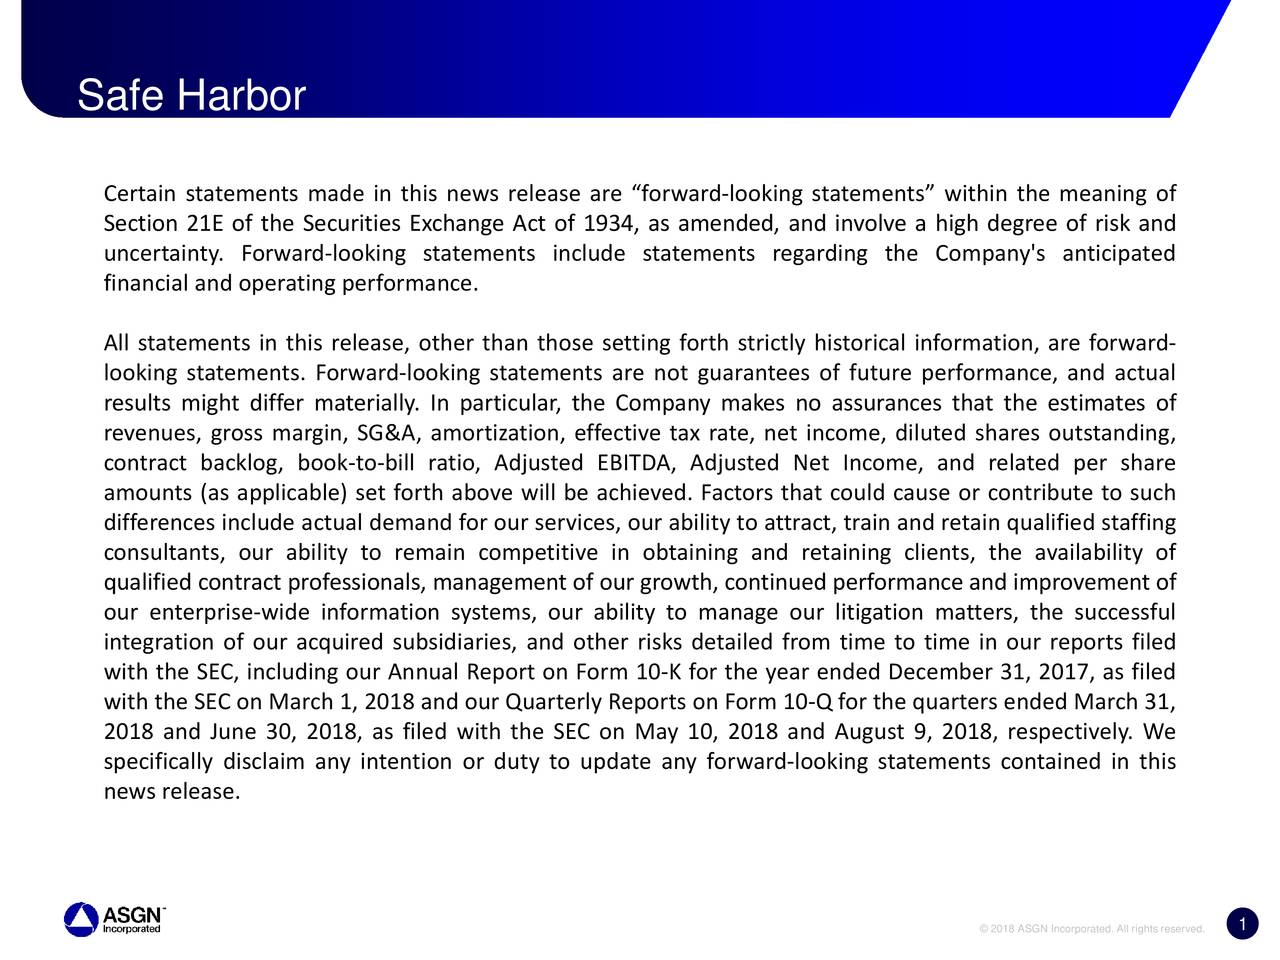 """Certain statements made in this news release are """"forward-looking statements"""" within the meaning of Section 21E of the Securities Exchange Act of 1934, as amended, and involve a high degree of risk and uncertainty. Forward-looking statements include statements regarding the Company's anticipated financial and operating performance. All statements in this release, other than those setting forth strictly historical information, are forward- looking statements. Forward-looking statements are not guarantees of future performance, and actual results might differ materially. In particular, the Company makes no assurances that the estimates of revenues, gross margin, SG&A, amortization, effective tax rate, net income, diluted shares outstanding, contract backlog, book-to-bill ratio, Adjusted EBITDA, Adjusted Net Income, and related per share amounts (as applicable) set forth above will be achieved. Factors that could cause or contribute to such differences include actual demand for our services, our ability to attract, train and retain qualified staffing consultants, our ability to remain competitive in obtaining and retaining clients, the availability of qualified contract professionals, management of our growth, continued performance and improvement of our enterprise-wide information systems, our ability to manage our litigation matters, the successful integration of our acquired subsidiaries, and other risks detailed from time to time in our reports filed with the SEC, including our Annual Report on Form 10-K for the year ended December 31, 2017, as filed with the SEC on March 1, 2018 and our Quarterly Reports on Form 10-Q for the quarters ended March 31, 2018 and June 30, 2018, as filed with the SEC on May 10, 2018 and August 9, 2018, respectively. We specifically disclaim any intention or duty to update any forward-looking statements contained in this news release. 1 © 2018 ASGN Incorporated. All rights reserved."""